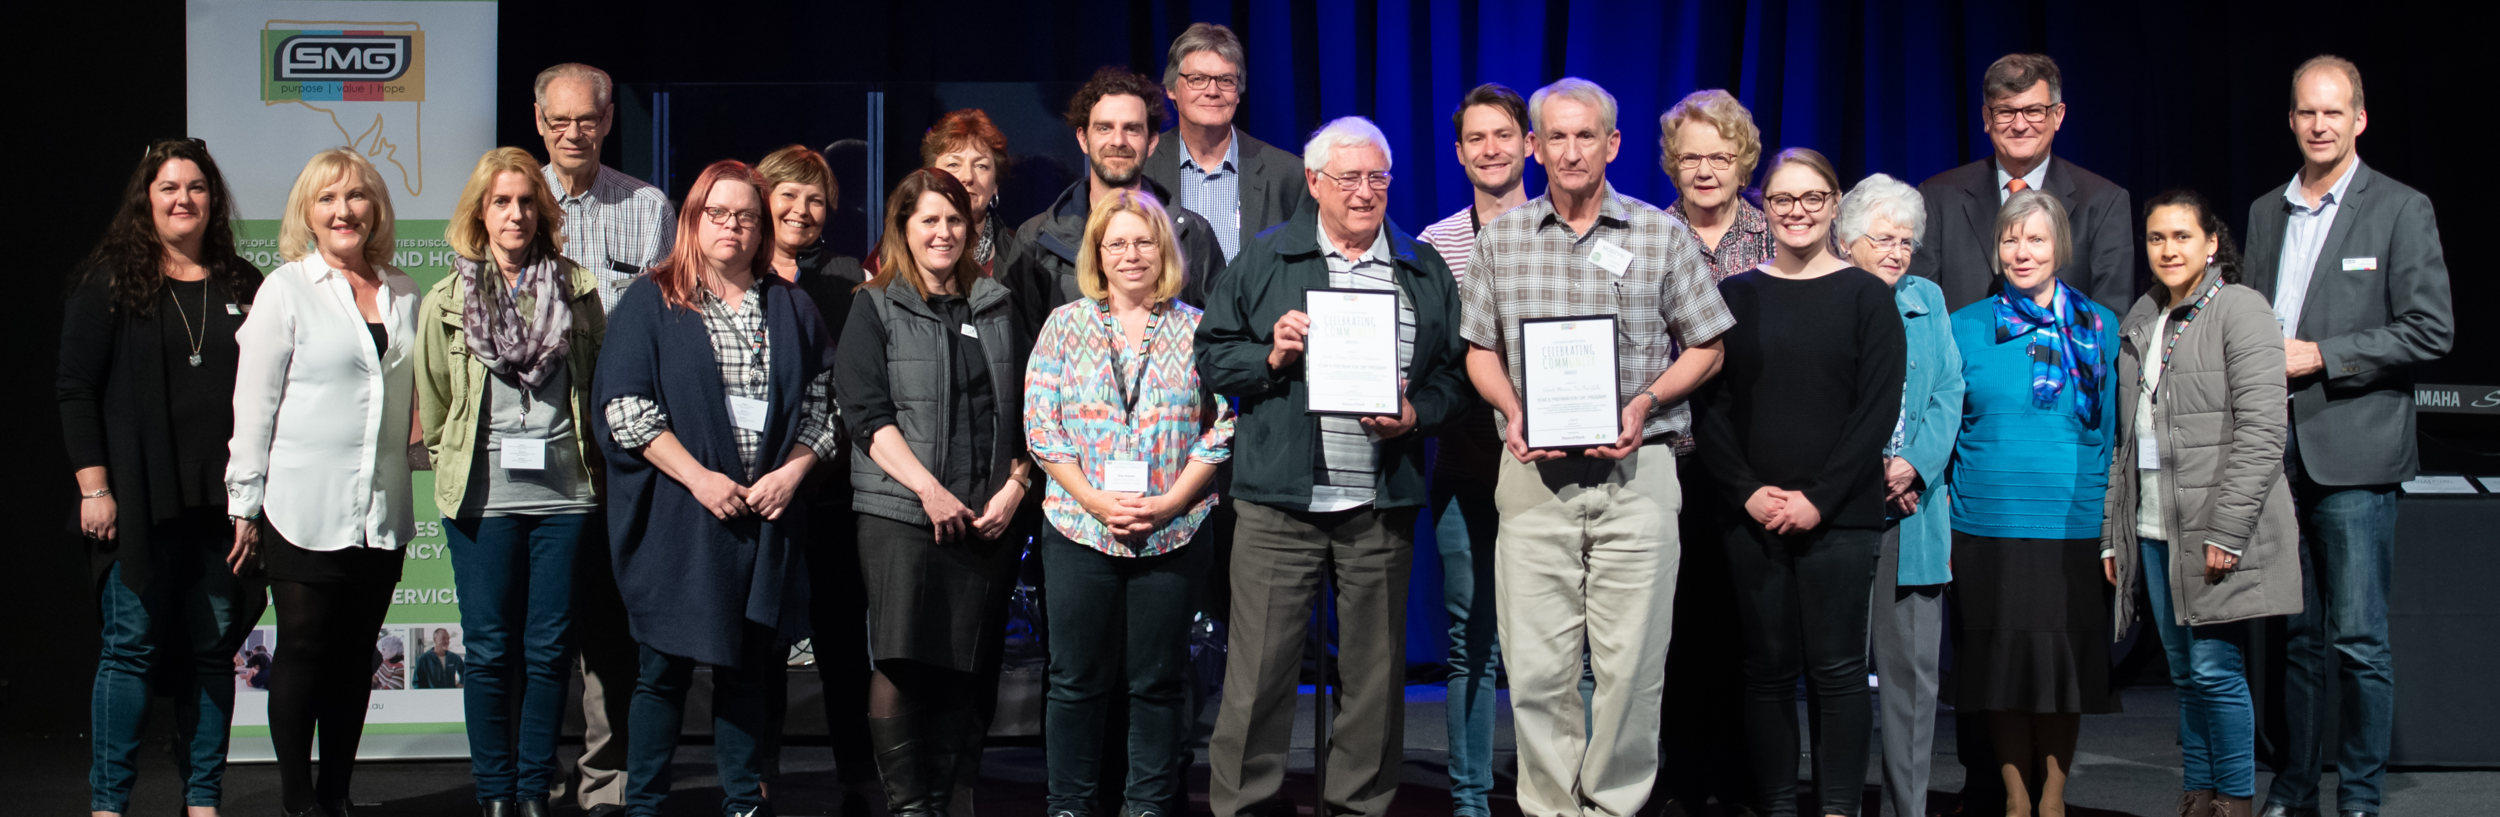 Angela Jolly, SMG Executive Director; Graham Brown, Chairperson; Lynn Arnold AO SMG Patron; Peter Skurray, Chaplaincy Services Manager; and Margaret Green, Community Development Manager Beyond Bank with awards winners